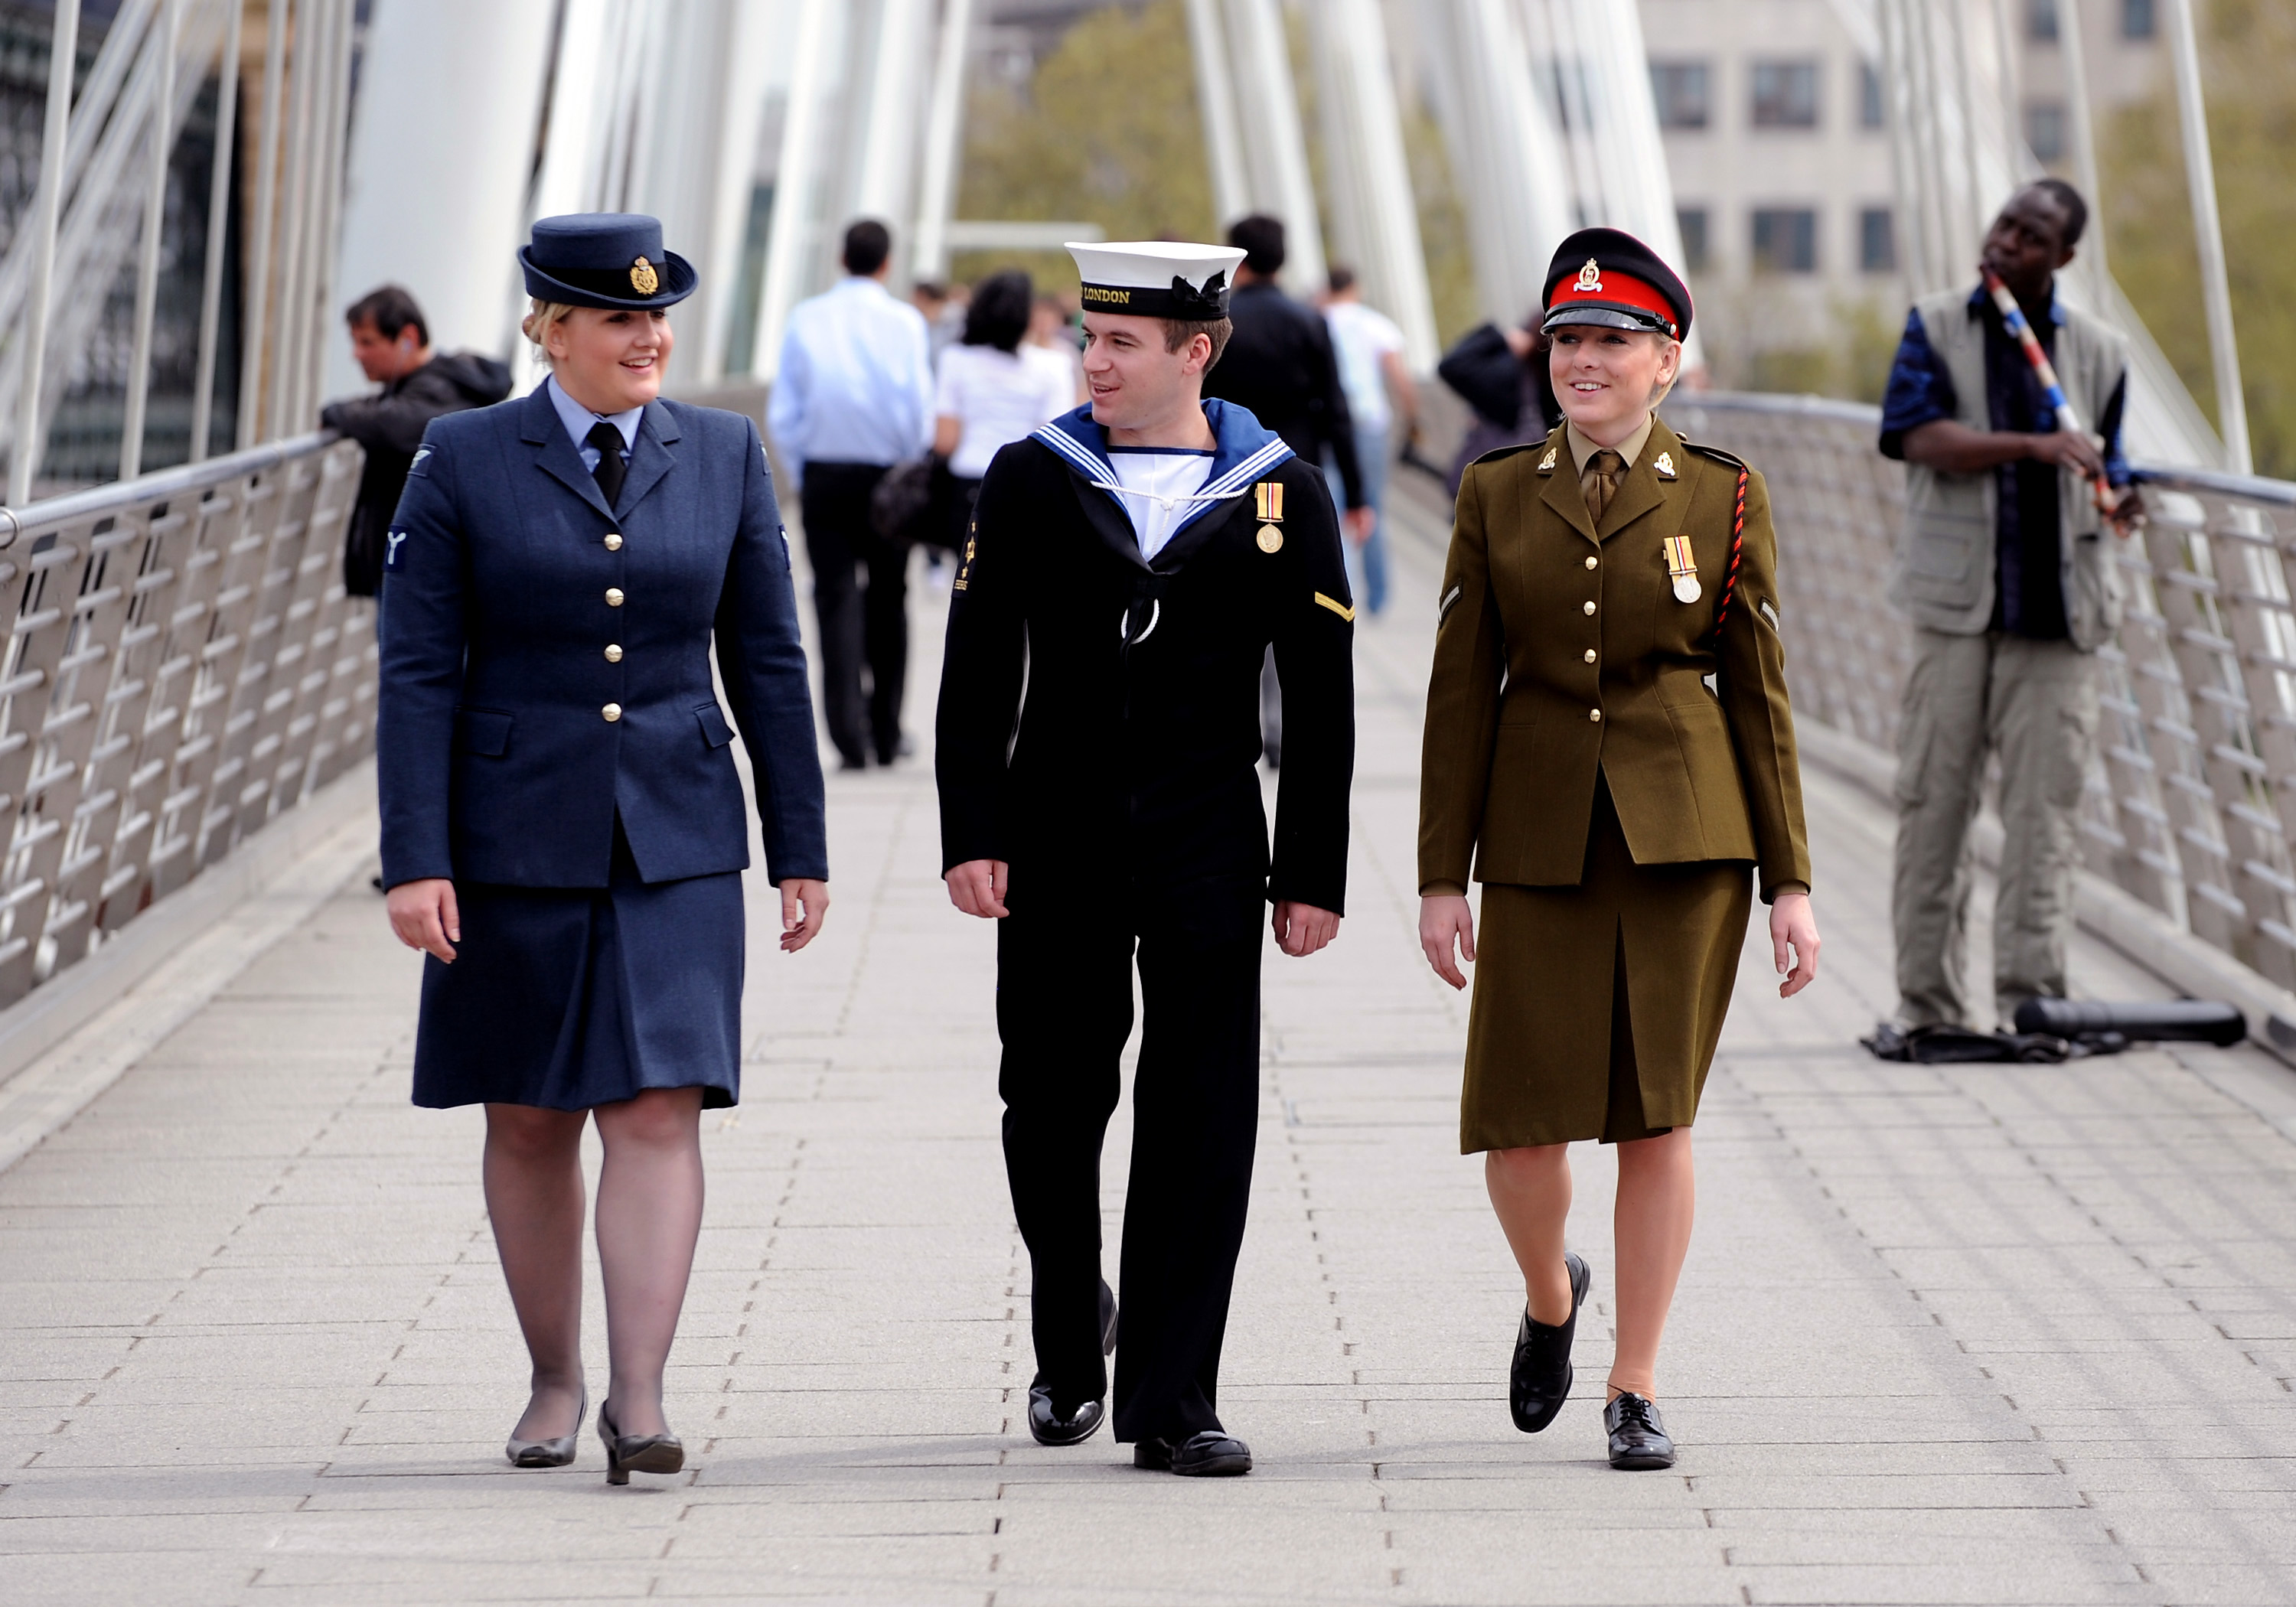 From left, a Royal Air Force servicewoman, a Royal Navy sailor and an Army soldier stroll through London prior to Armed Forces Day 1010.  This image is fully model released.